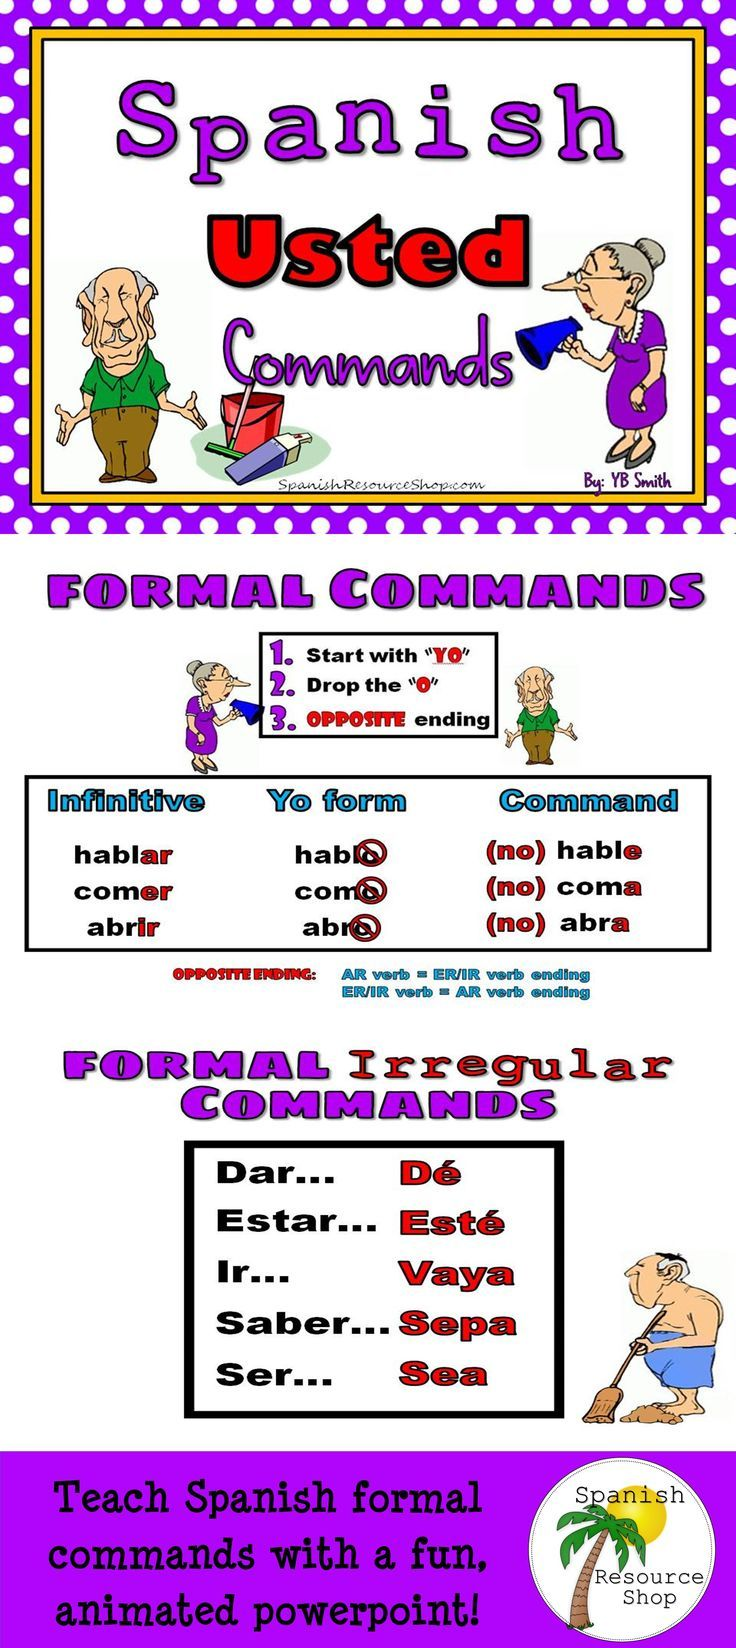 Spanish commands step-by-step with this fun, animated powerpoint!